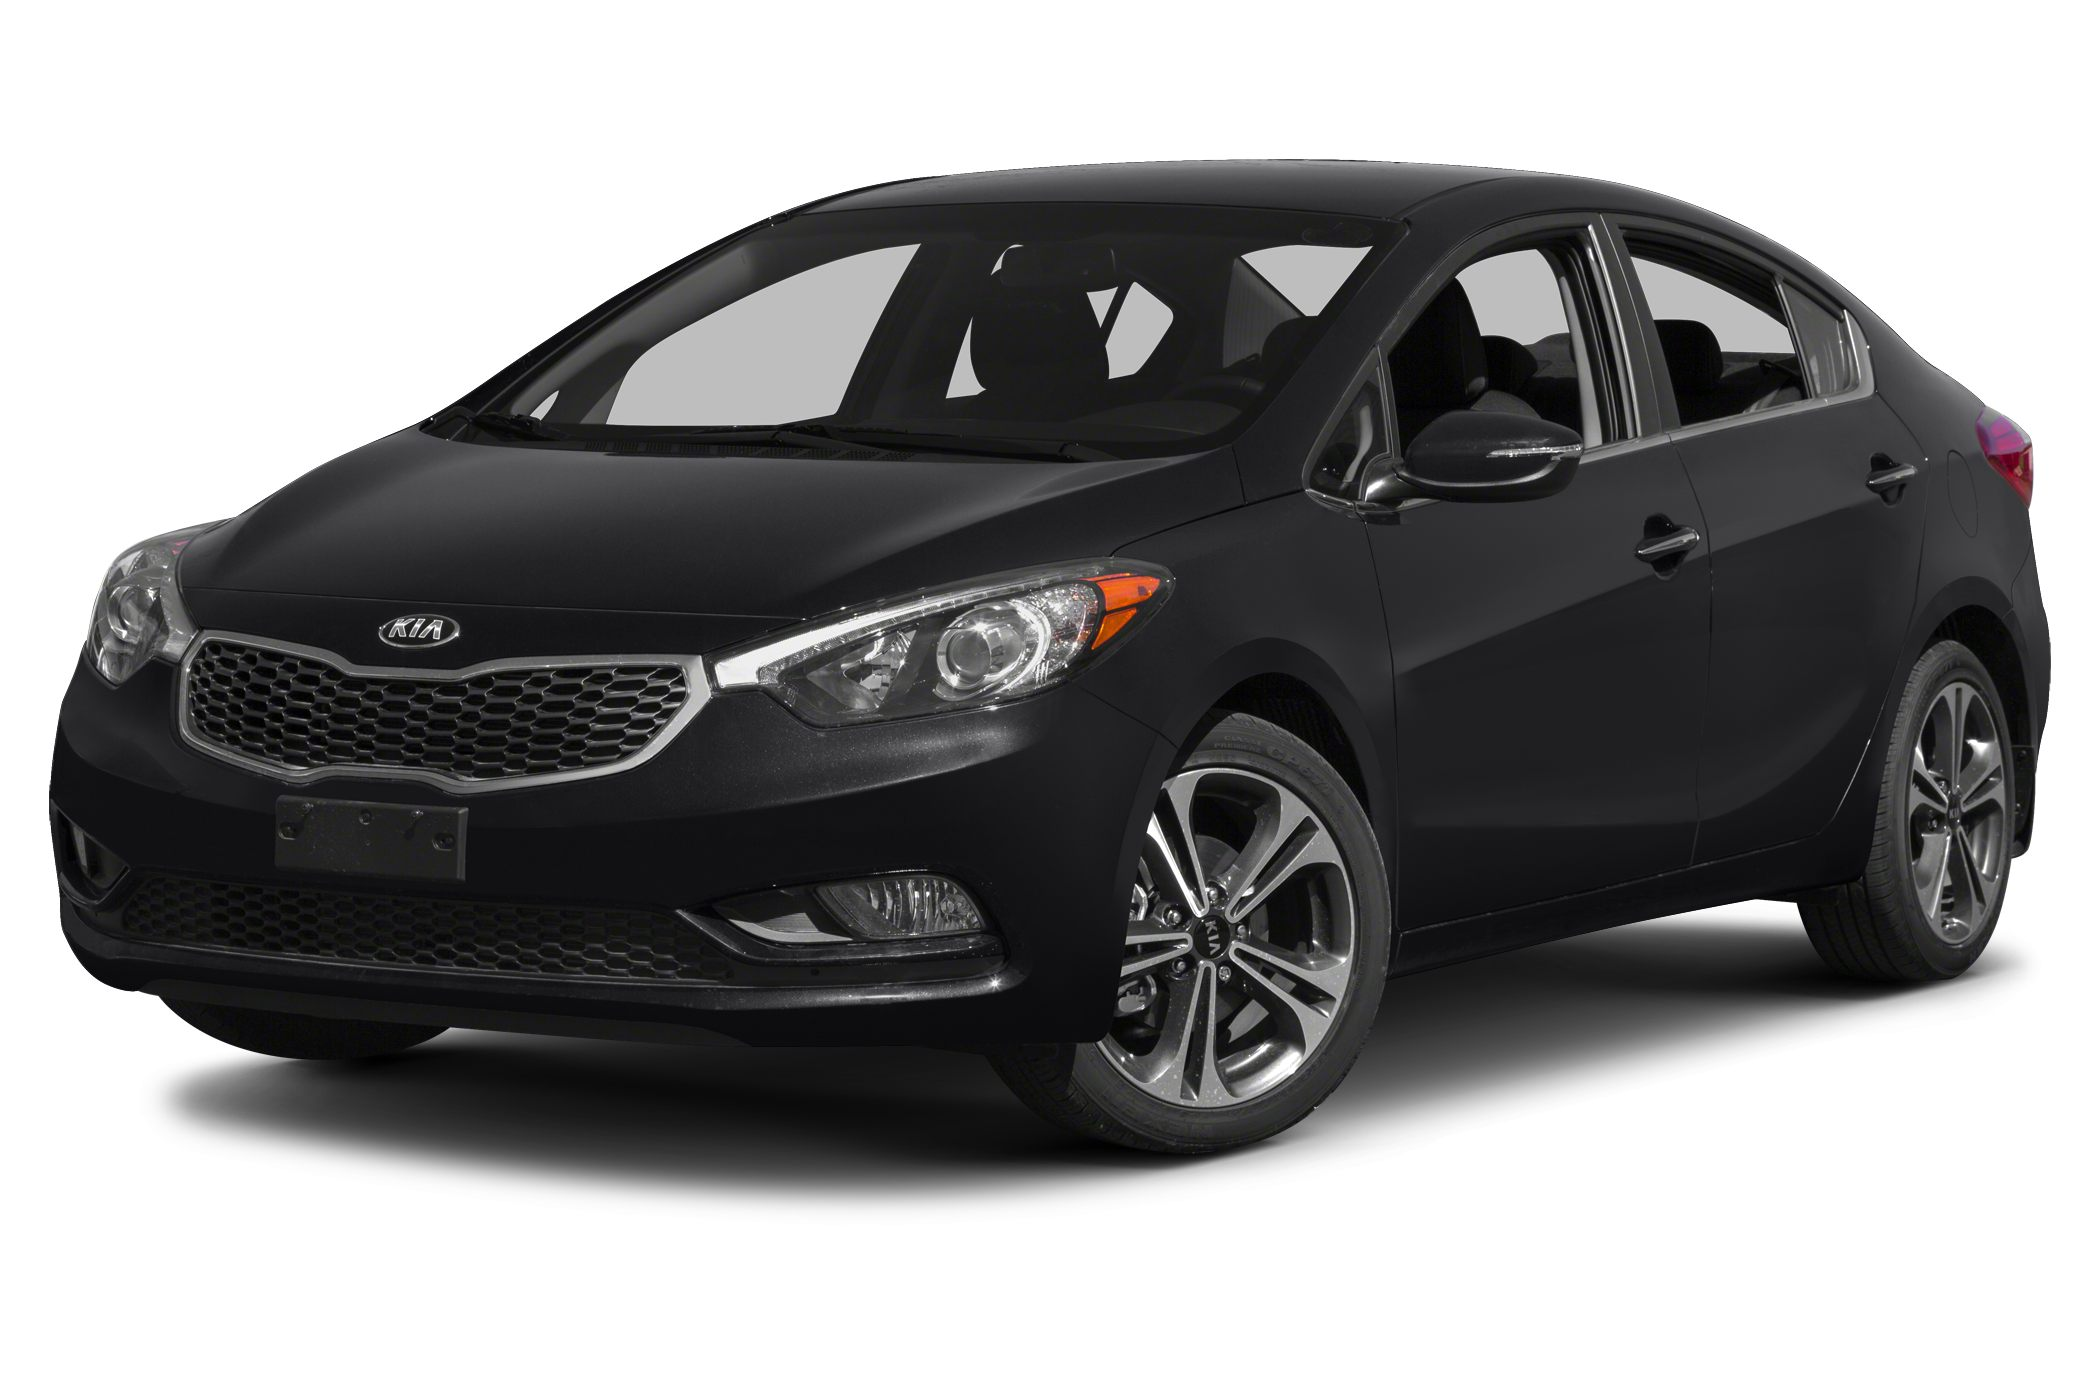 2015 Kia Forte EX Sedan for sale in Greer for $22,015 with 12 miles.